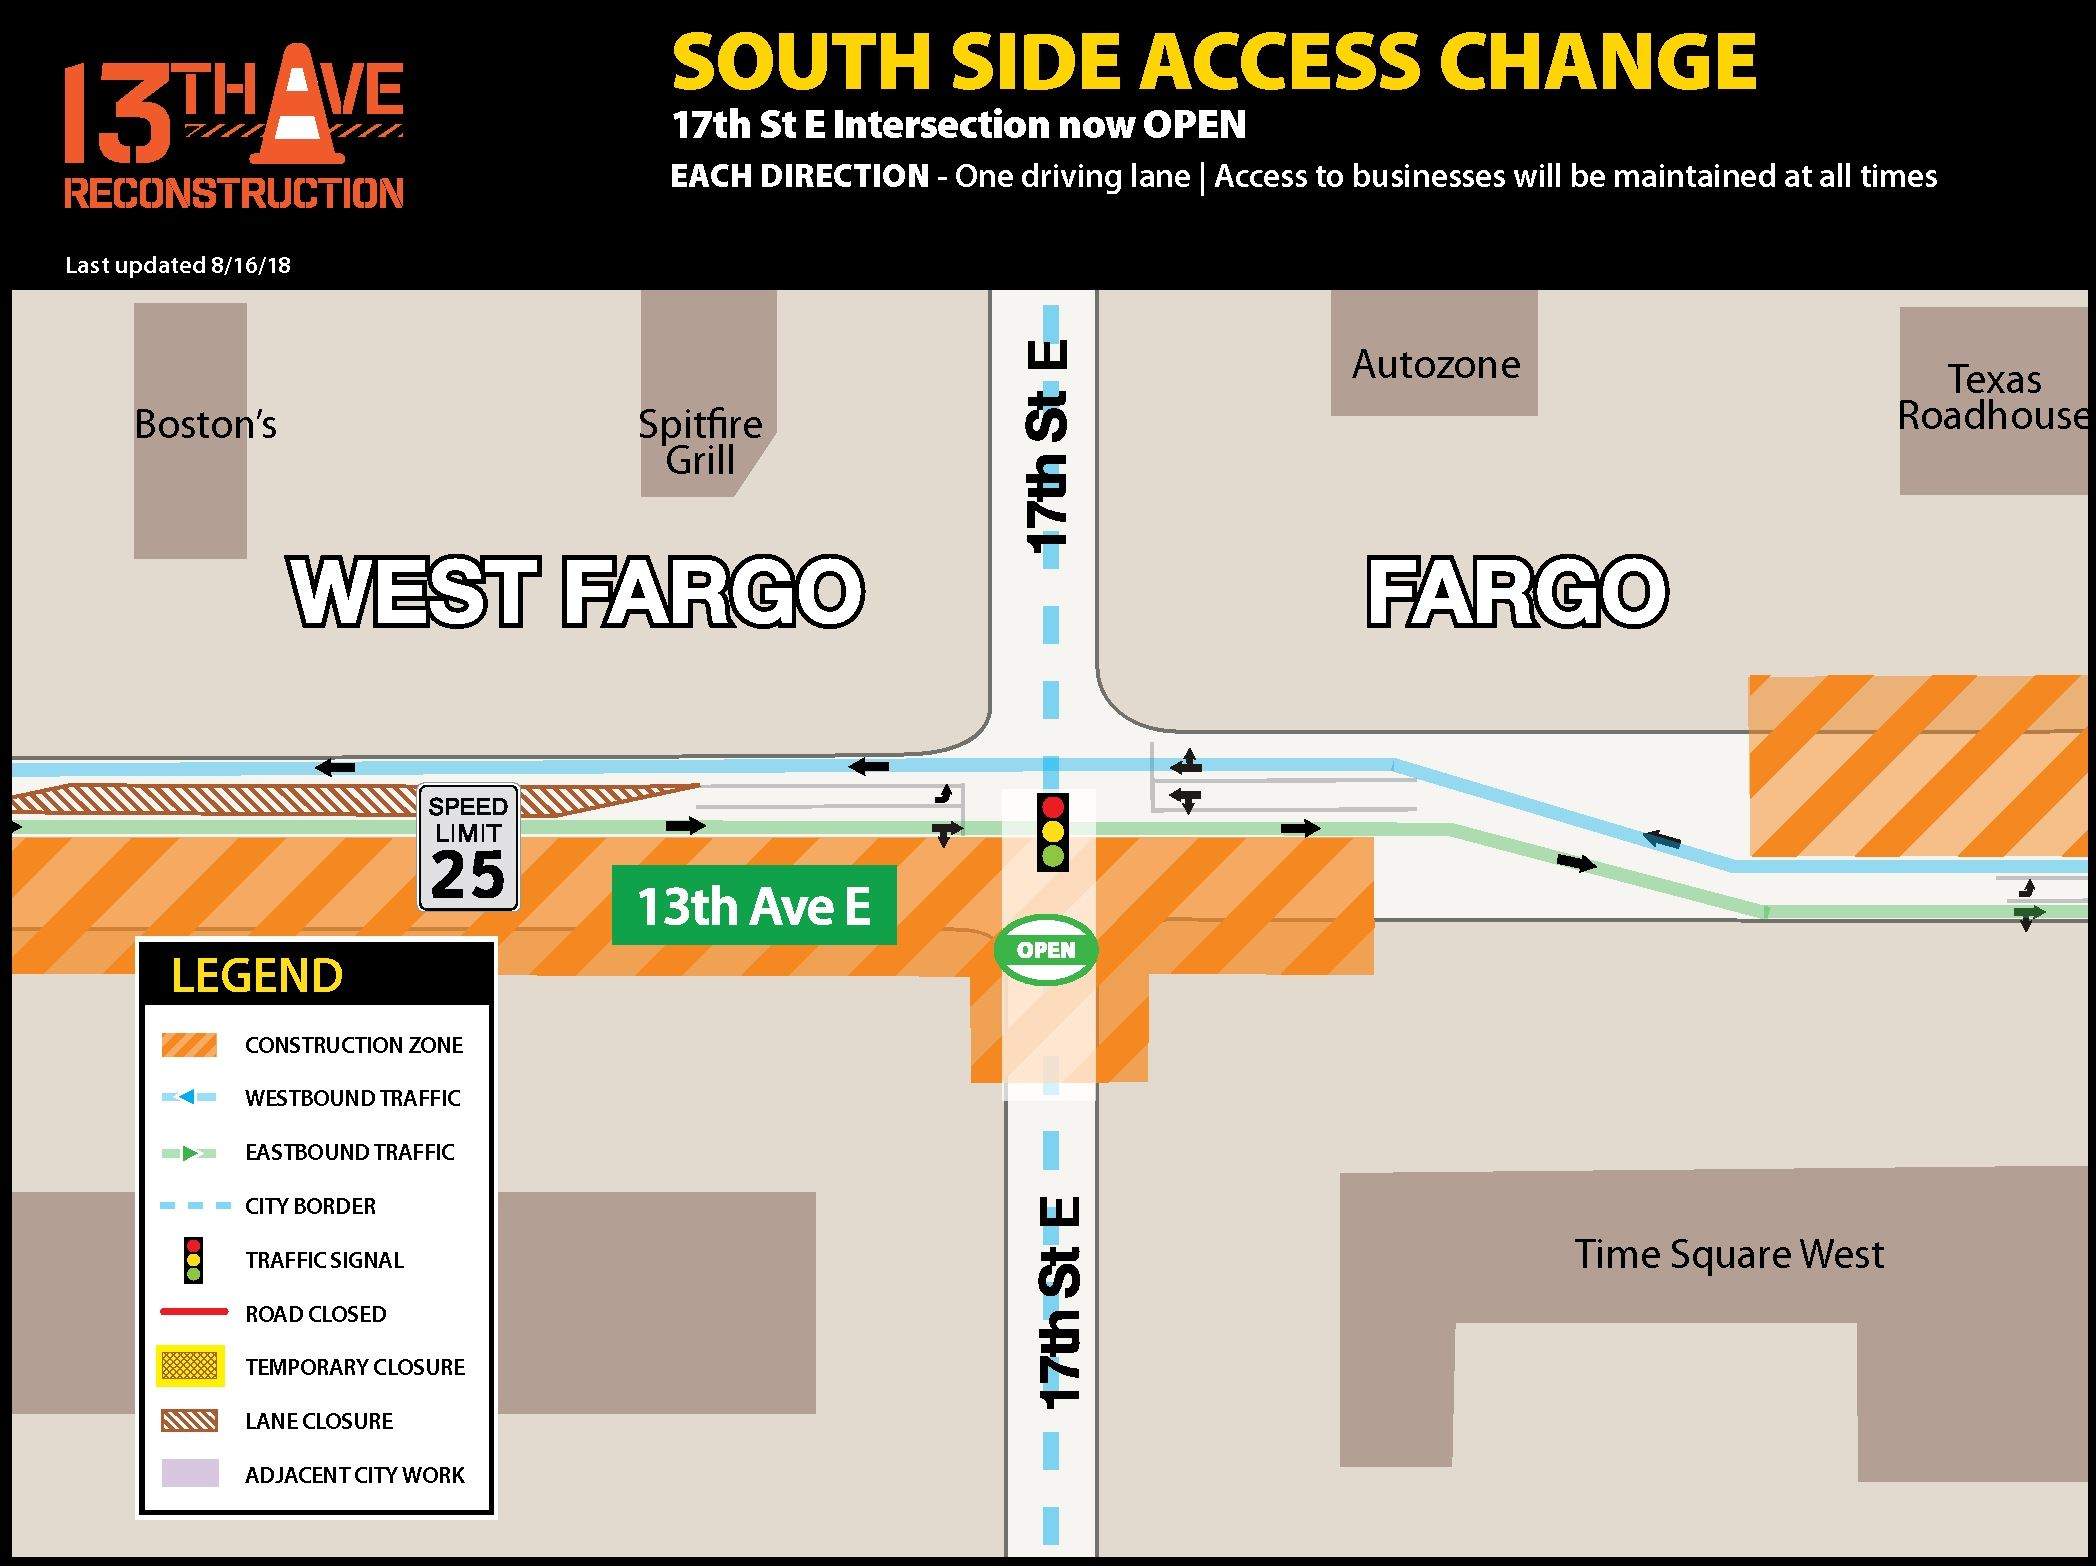 17th St. E. intersection now open